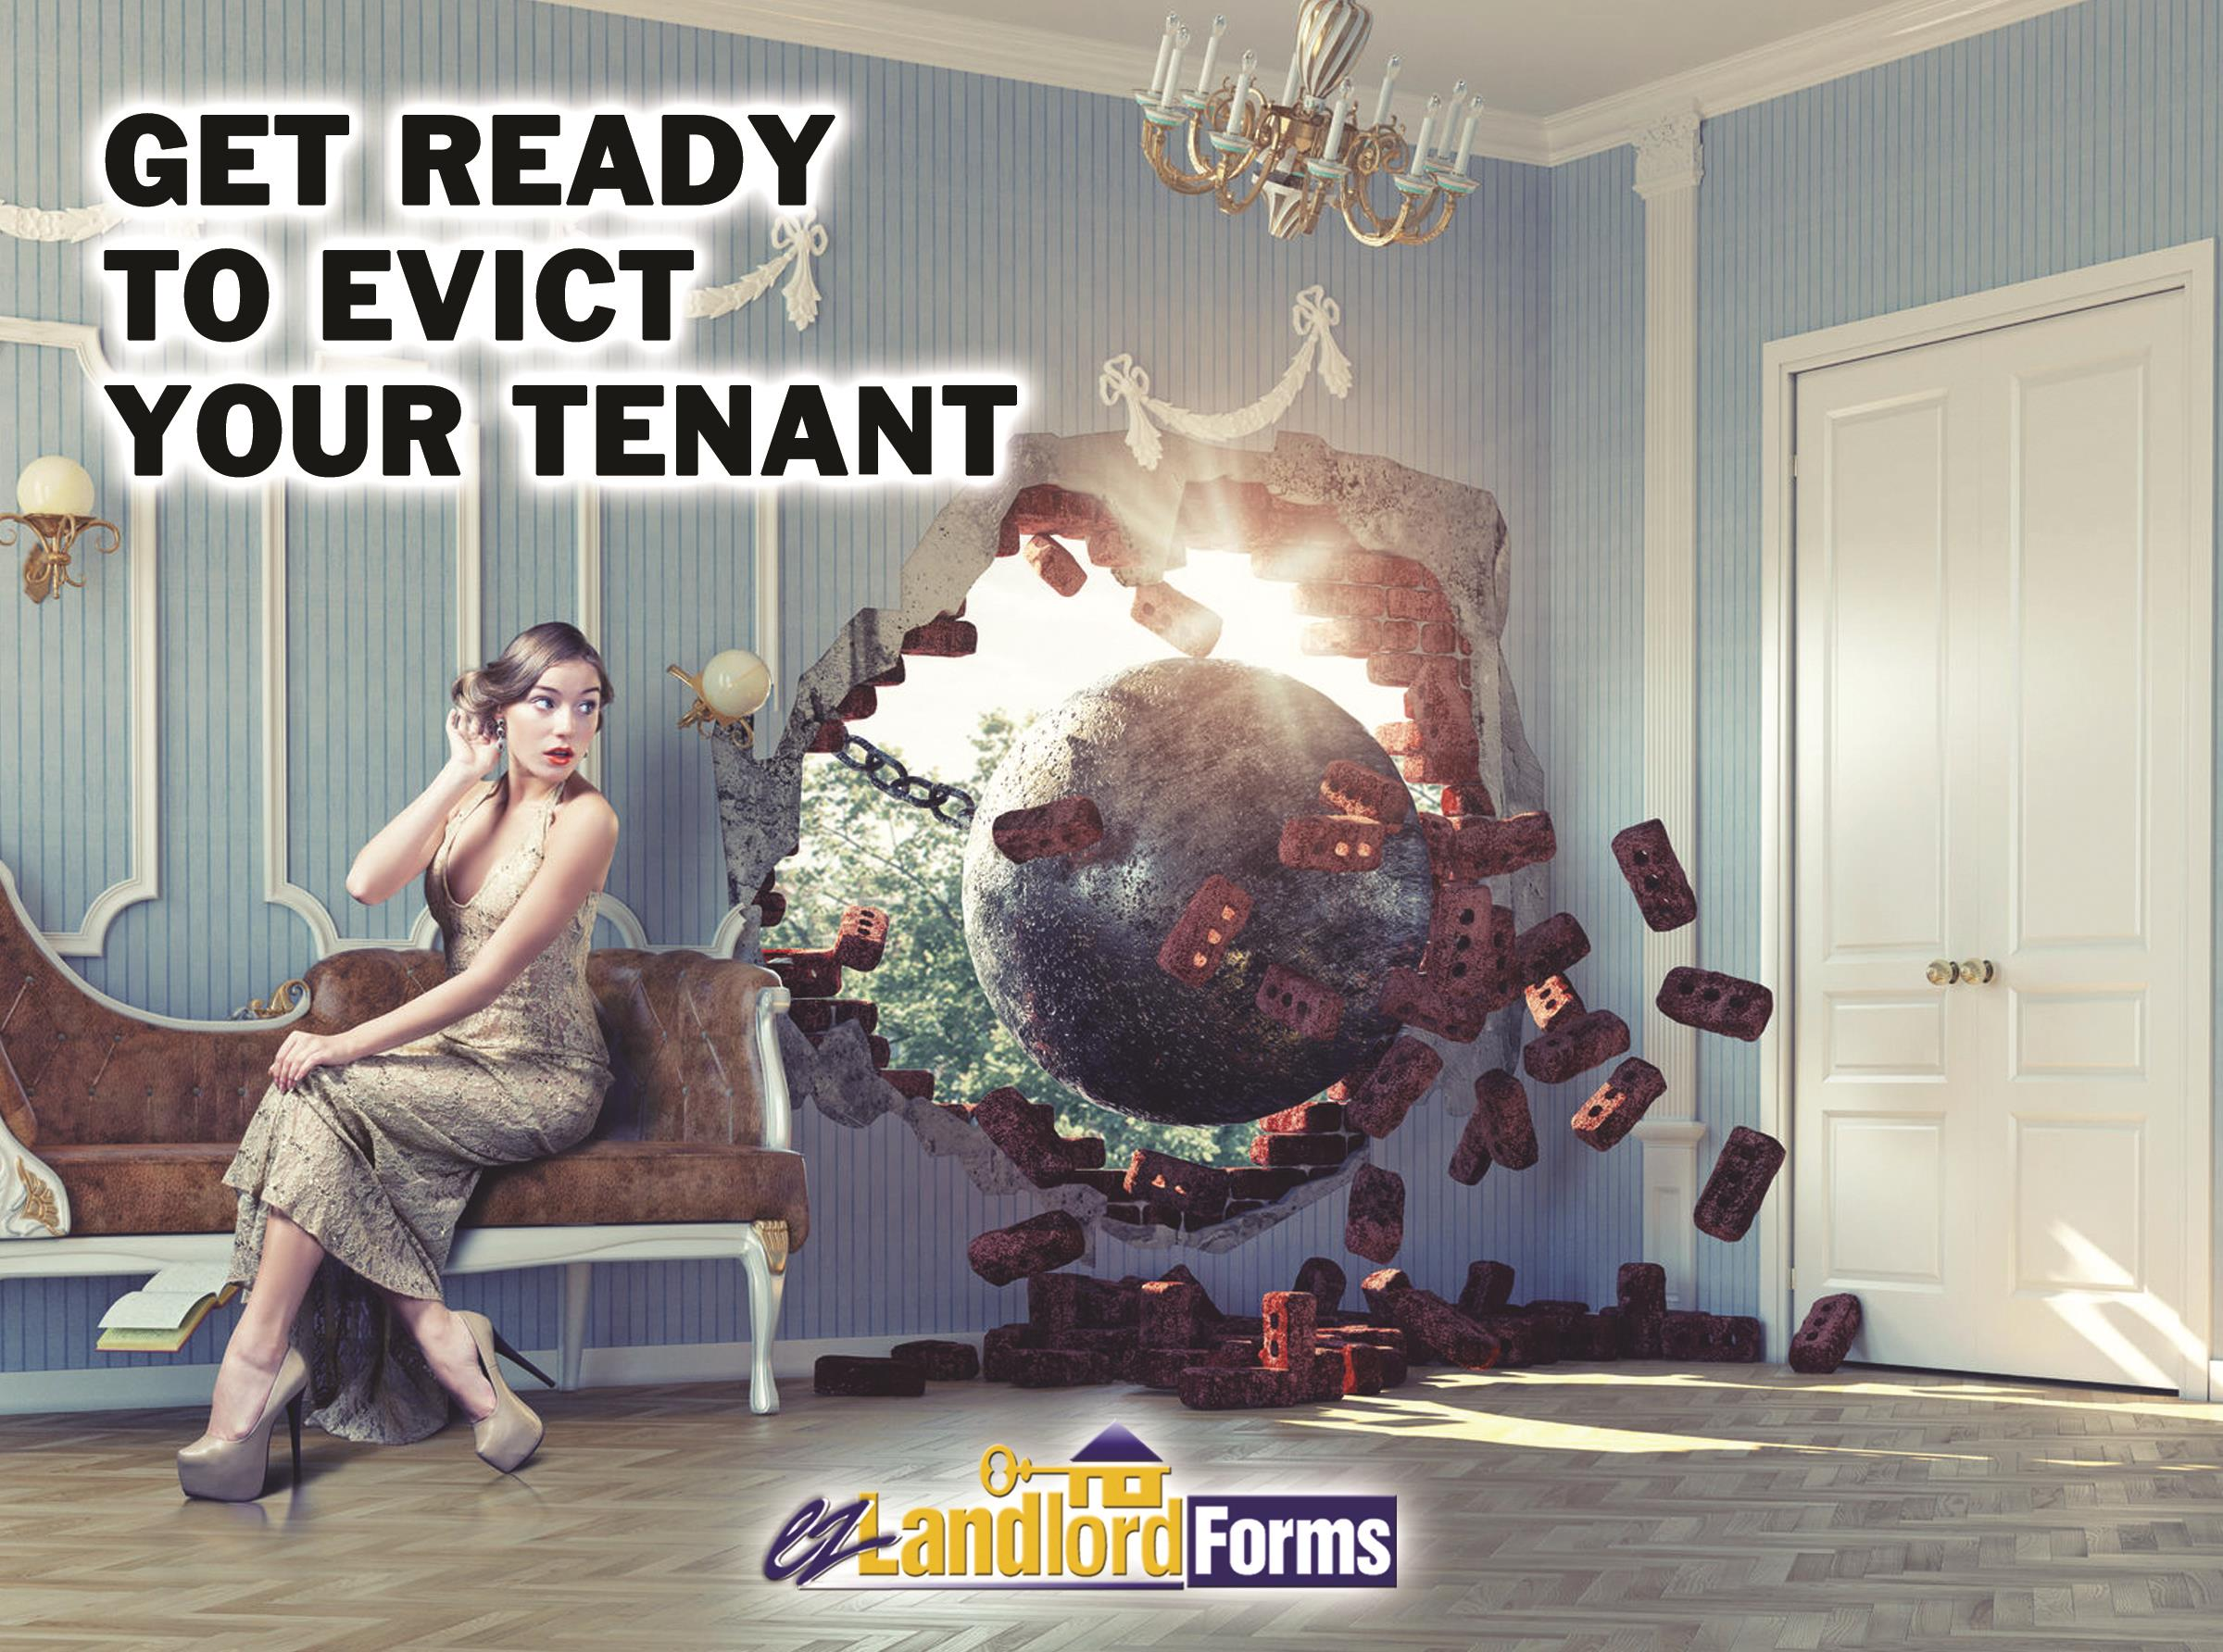 Get_Ready_to_Evict_Your_Tenant_5-9-17_V2